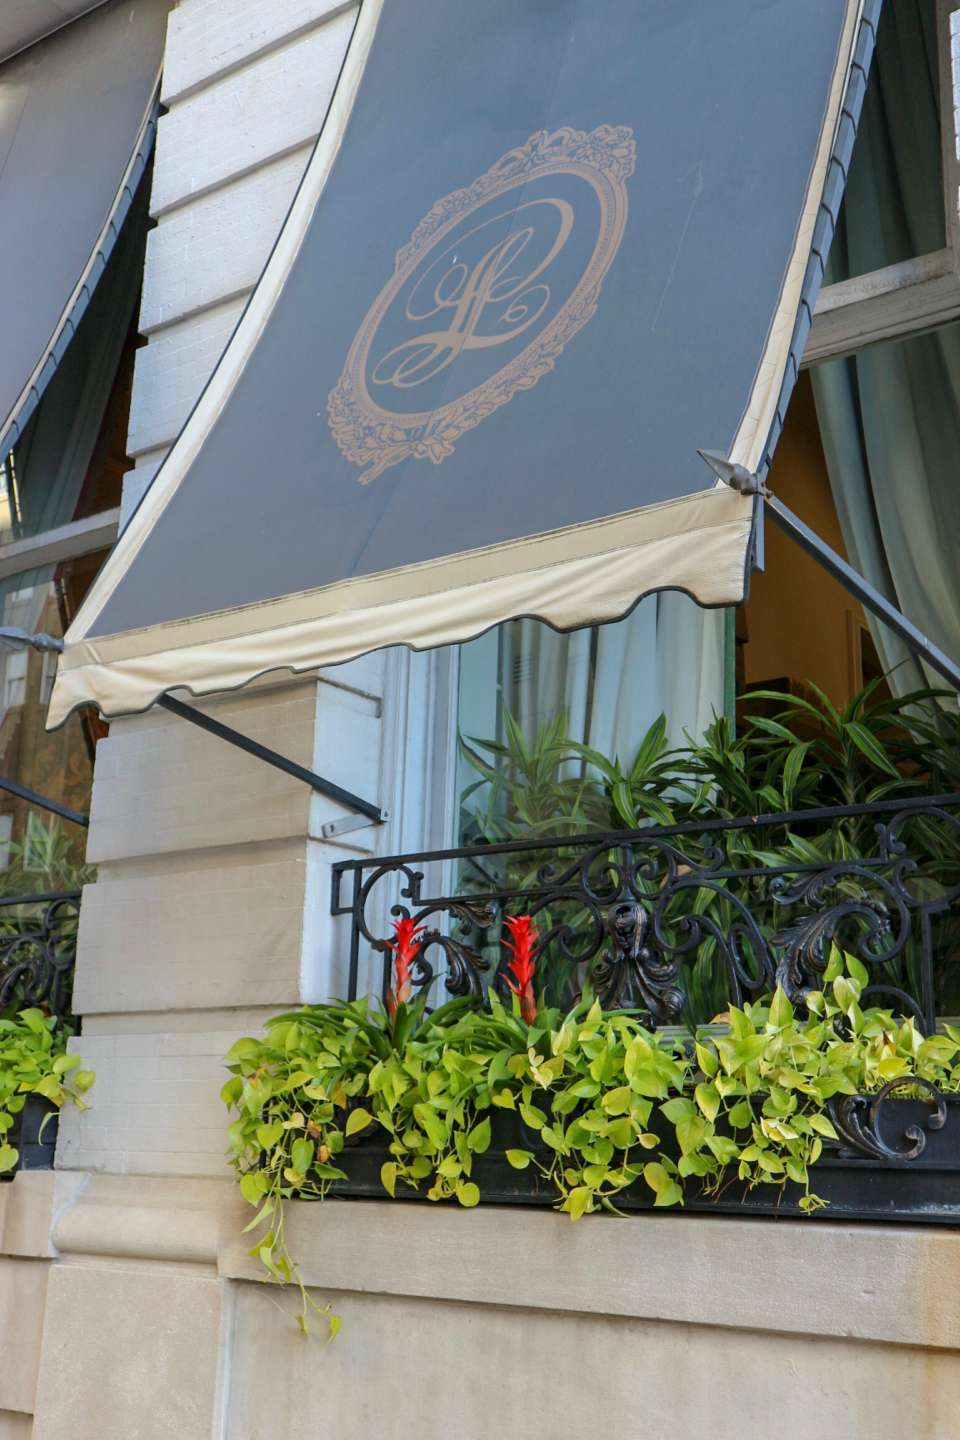 Our Holiday Weekend at New Orleans Le Pavillon - I'm Fixin' To - @mbg0112 - Our Holiday Weekend at Le Pavillon Hotel in New Orleans popular North Carolina travel blogger I'm Fixin' To